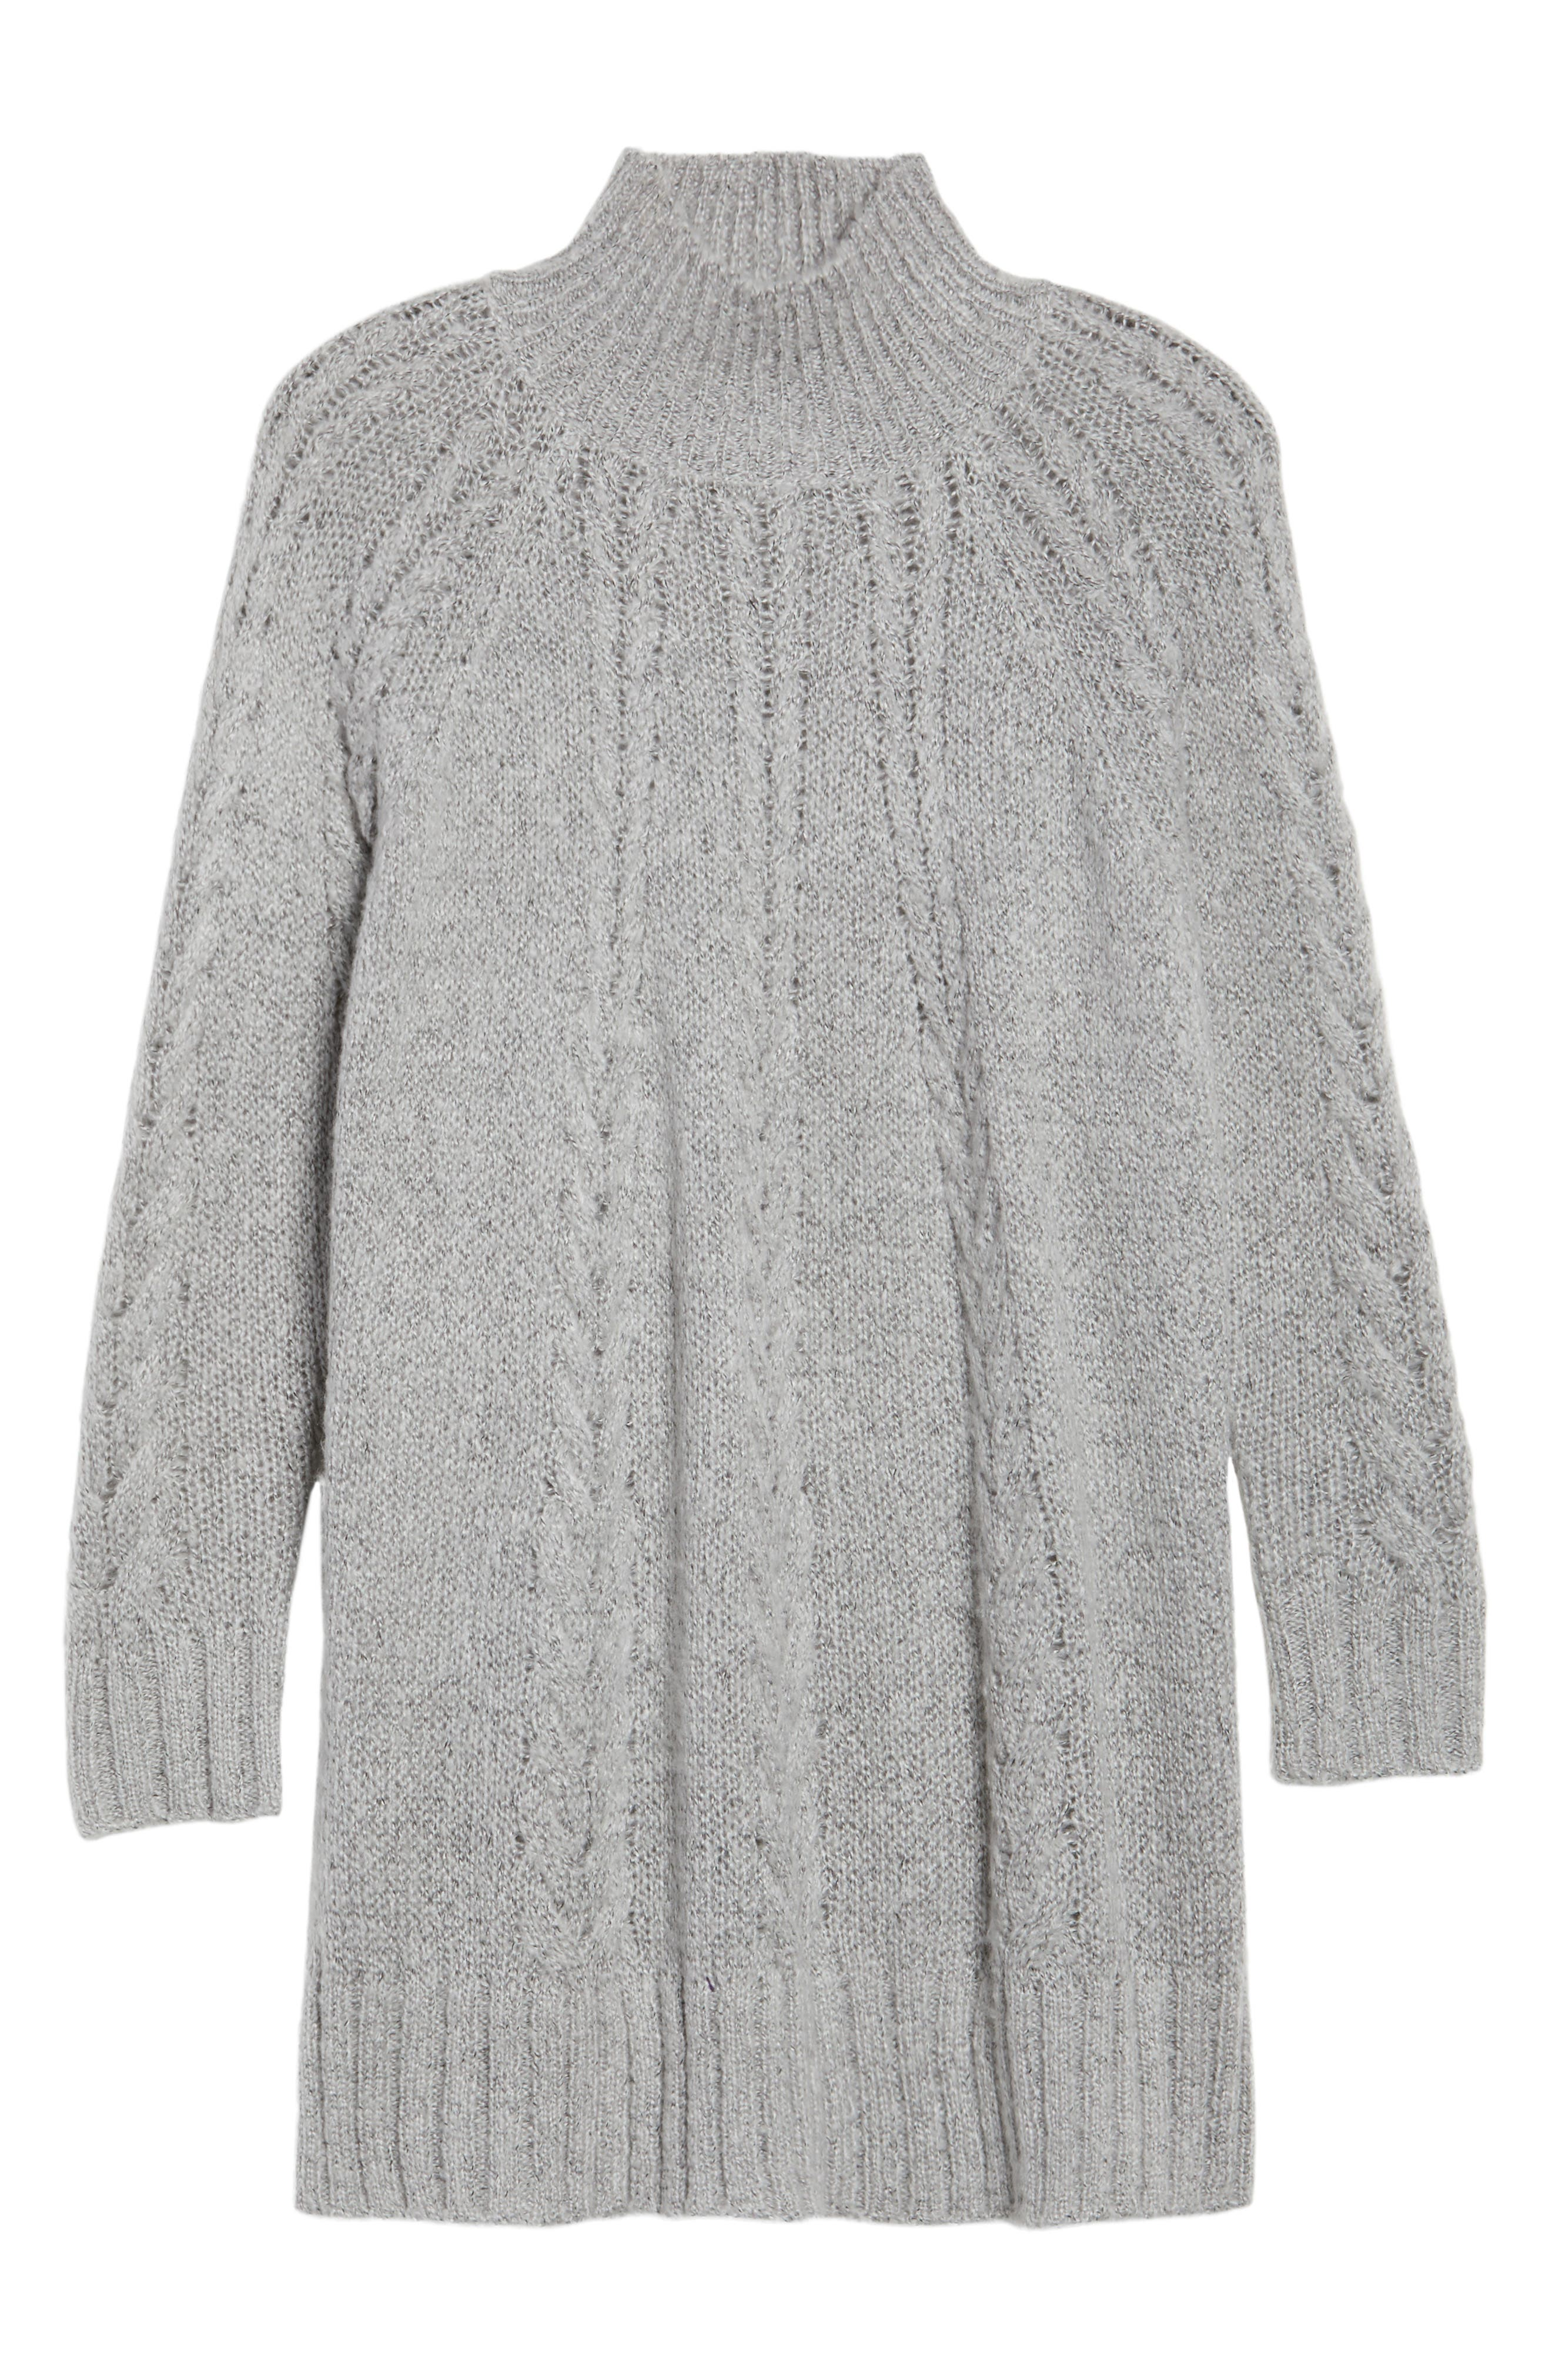 Cable Knit Tunic Sweater,                             Alternate thumbnail 6, color,                             030